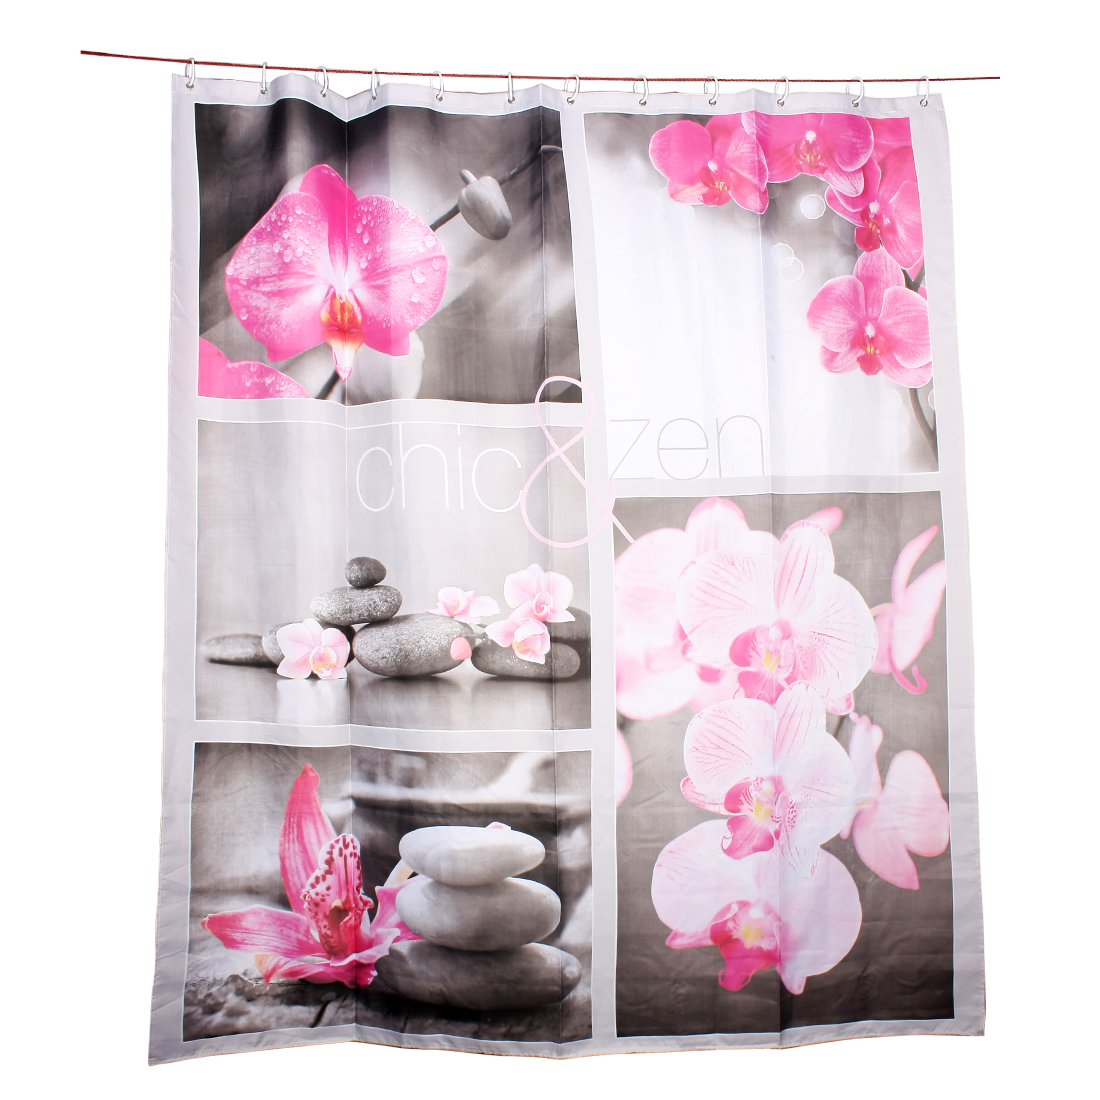 Printed polyester Flower stone combination shower curtain w 12 Hook Rings 180x200cm